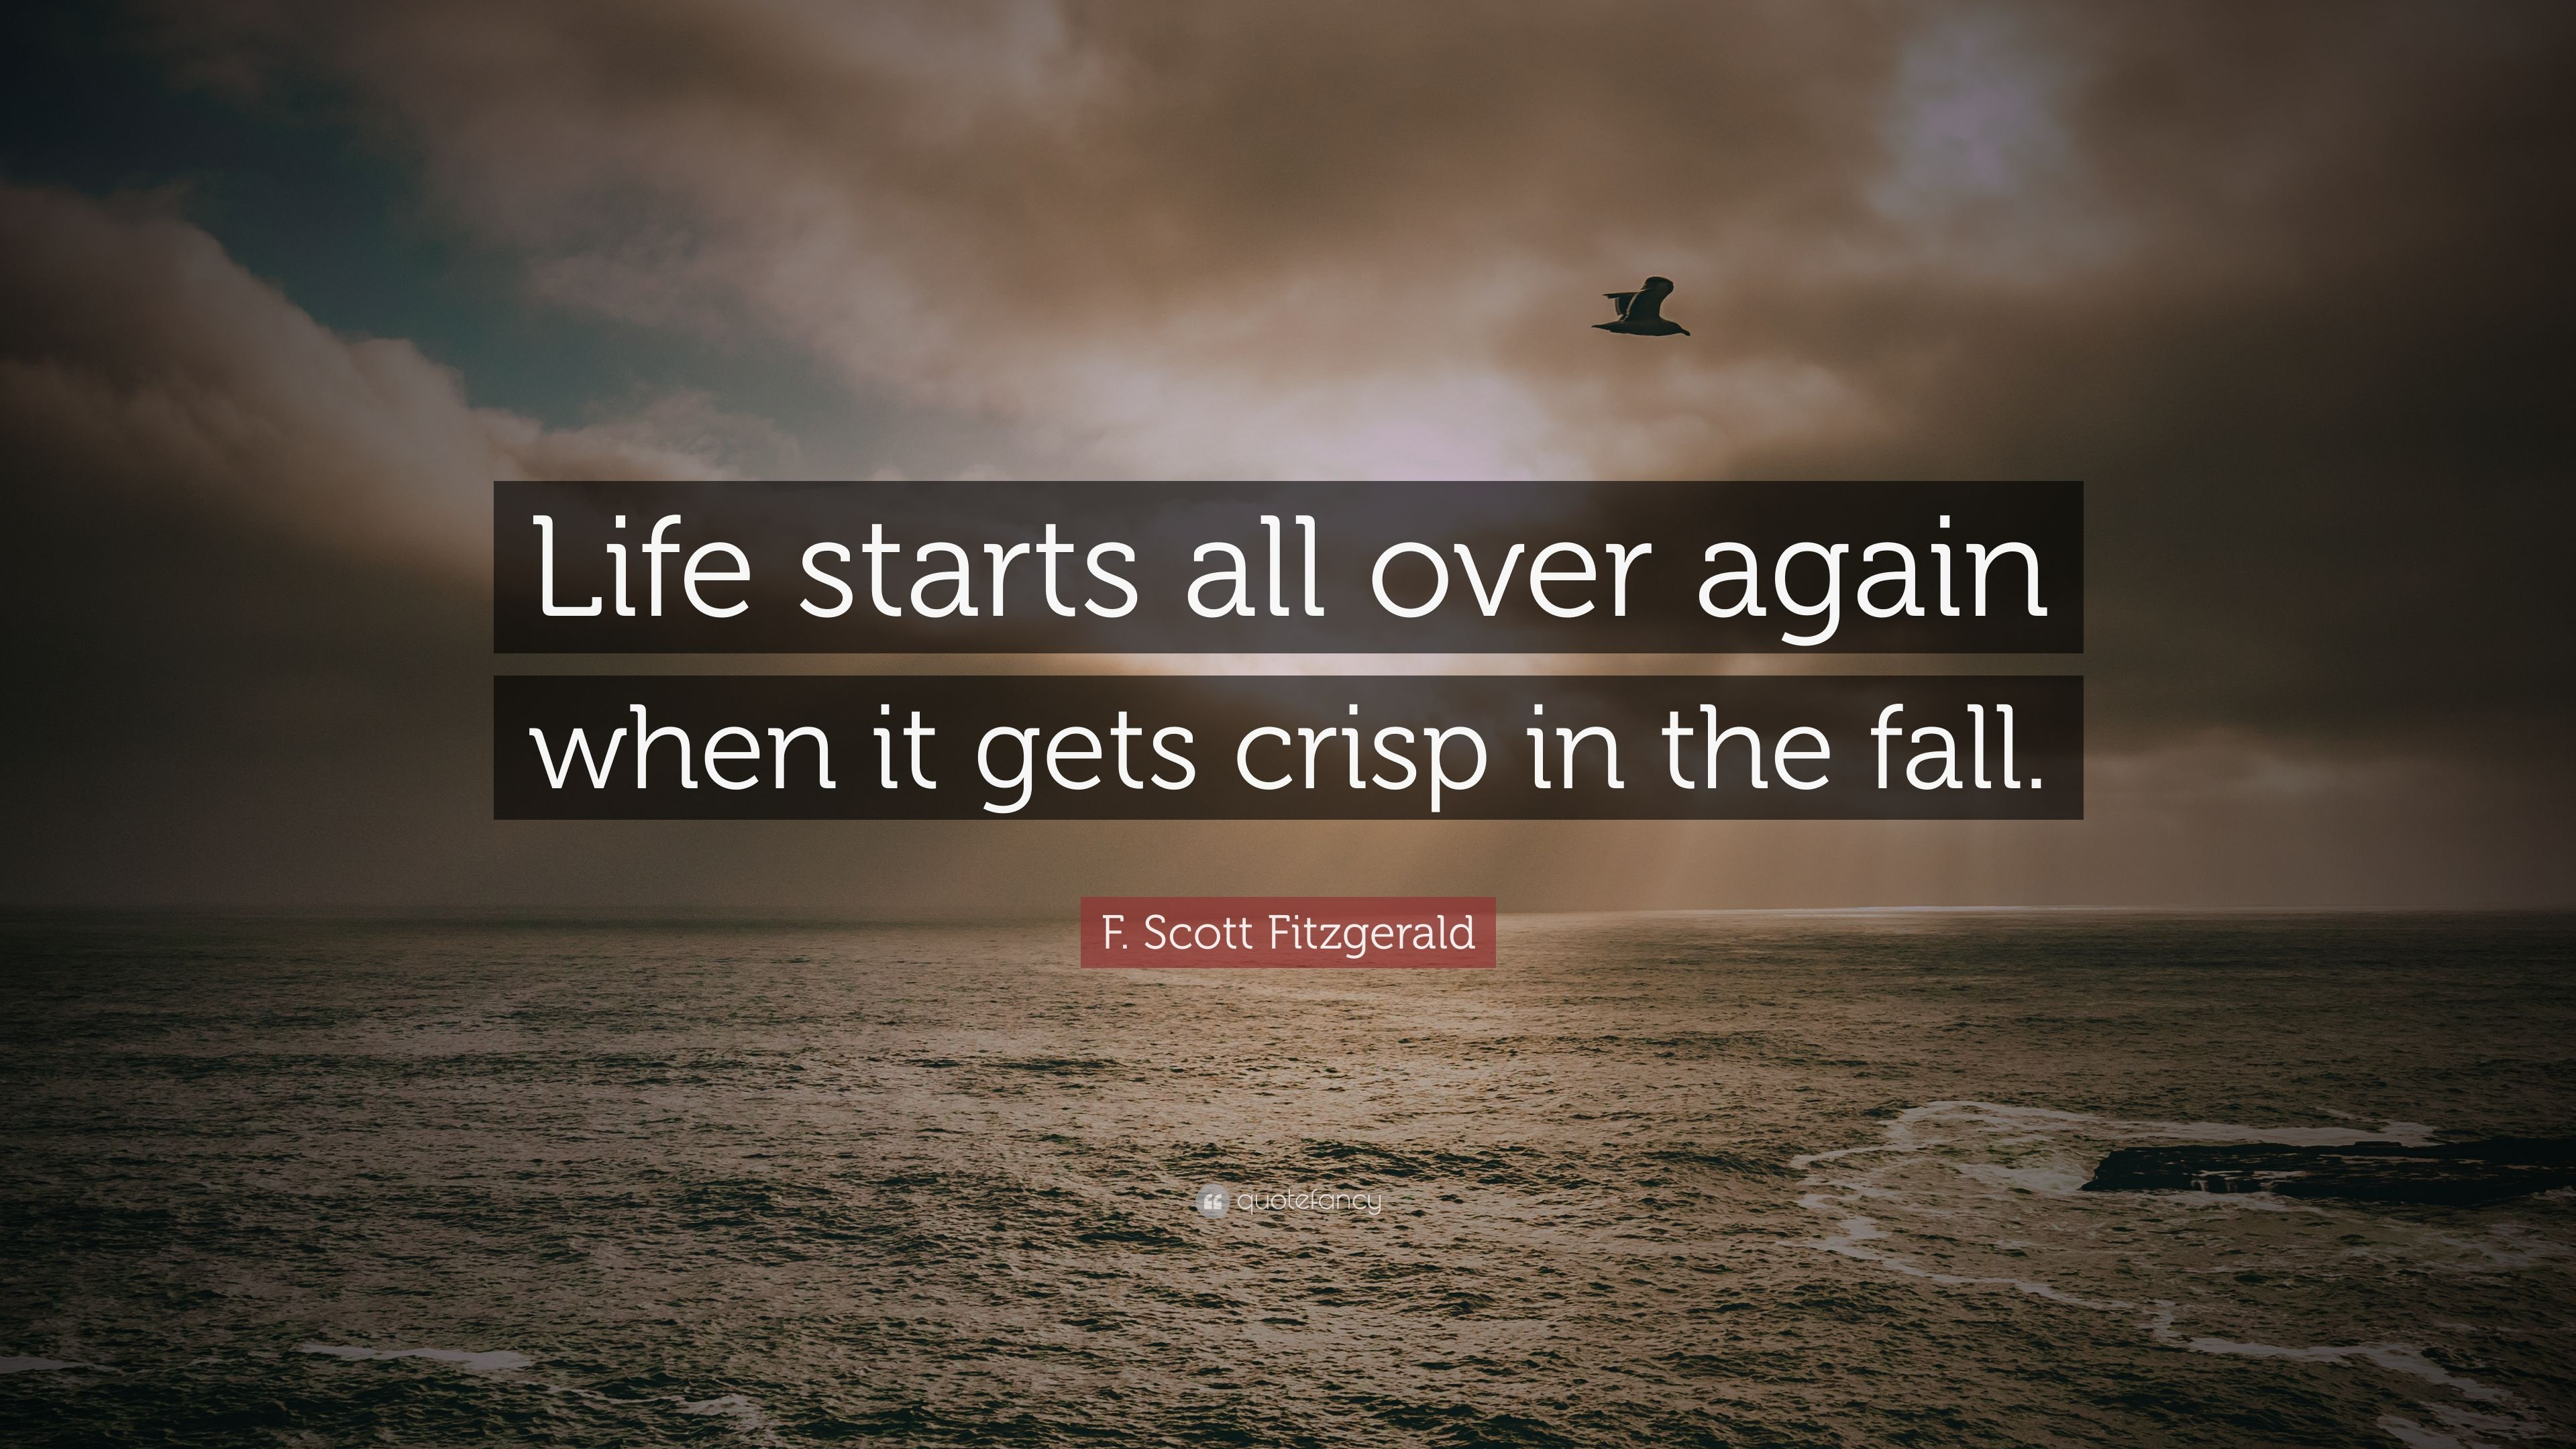 F scott fitzgerald quote life starts all over again when it gets crisp in the fall 12 - The house in which life starts over ...